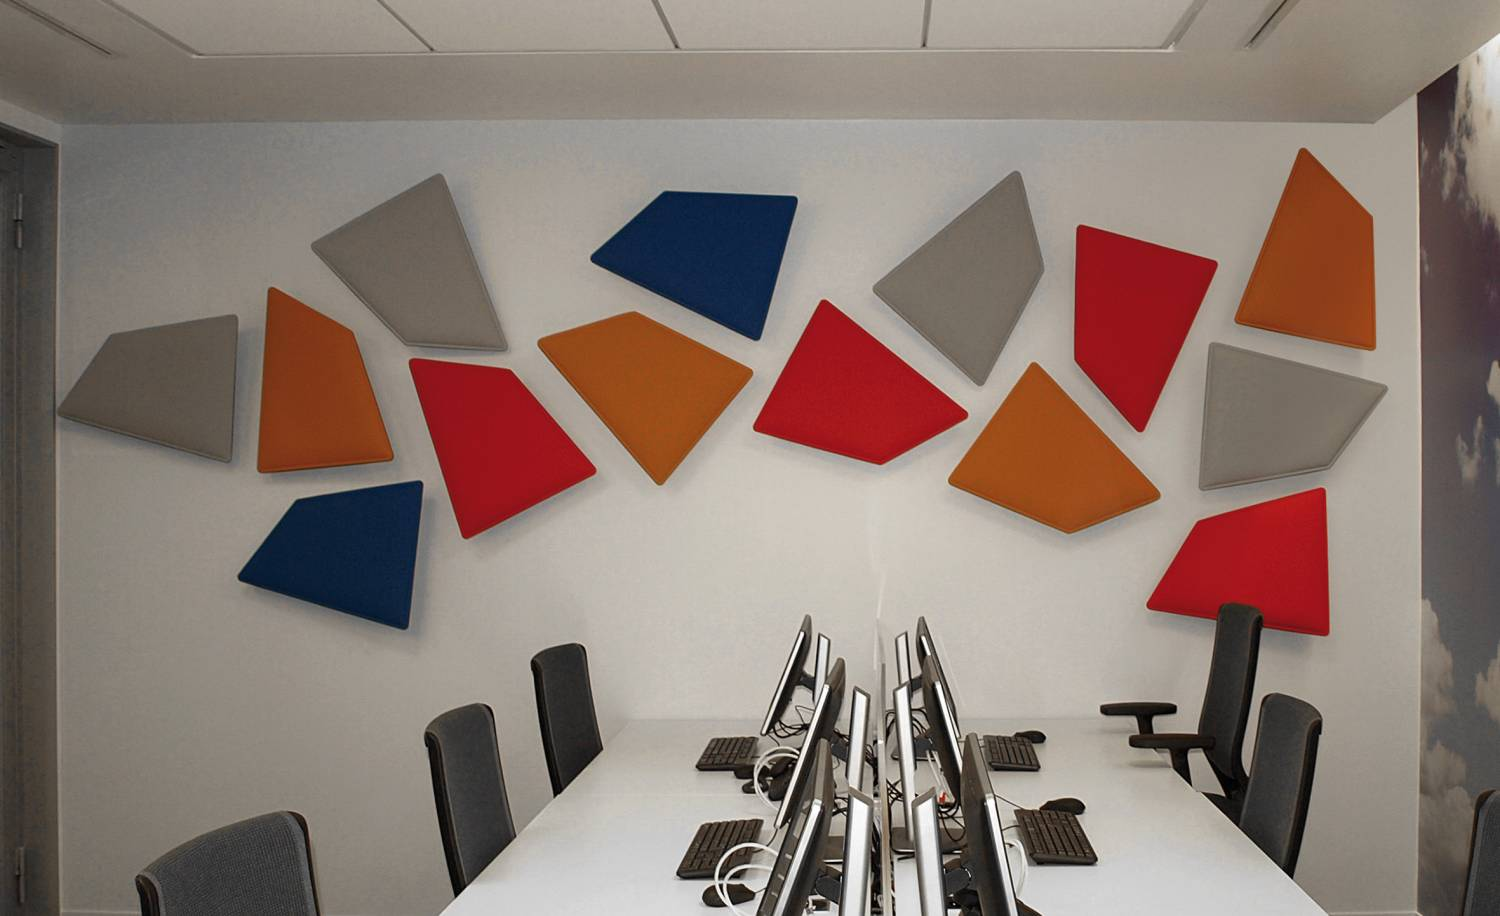 Flap-Acoustic-Wall-Mounted-Panels-In-Modern-Layout